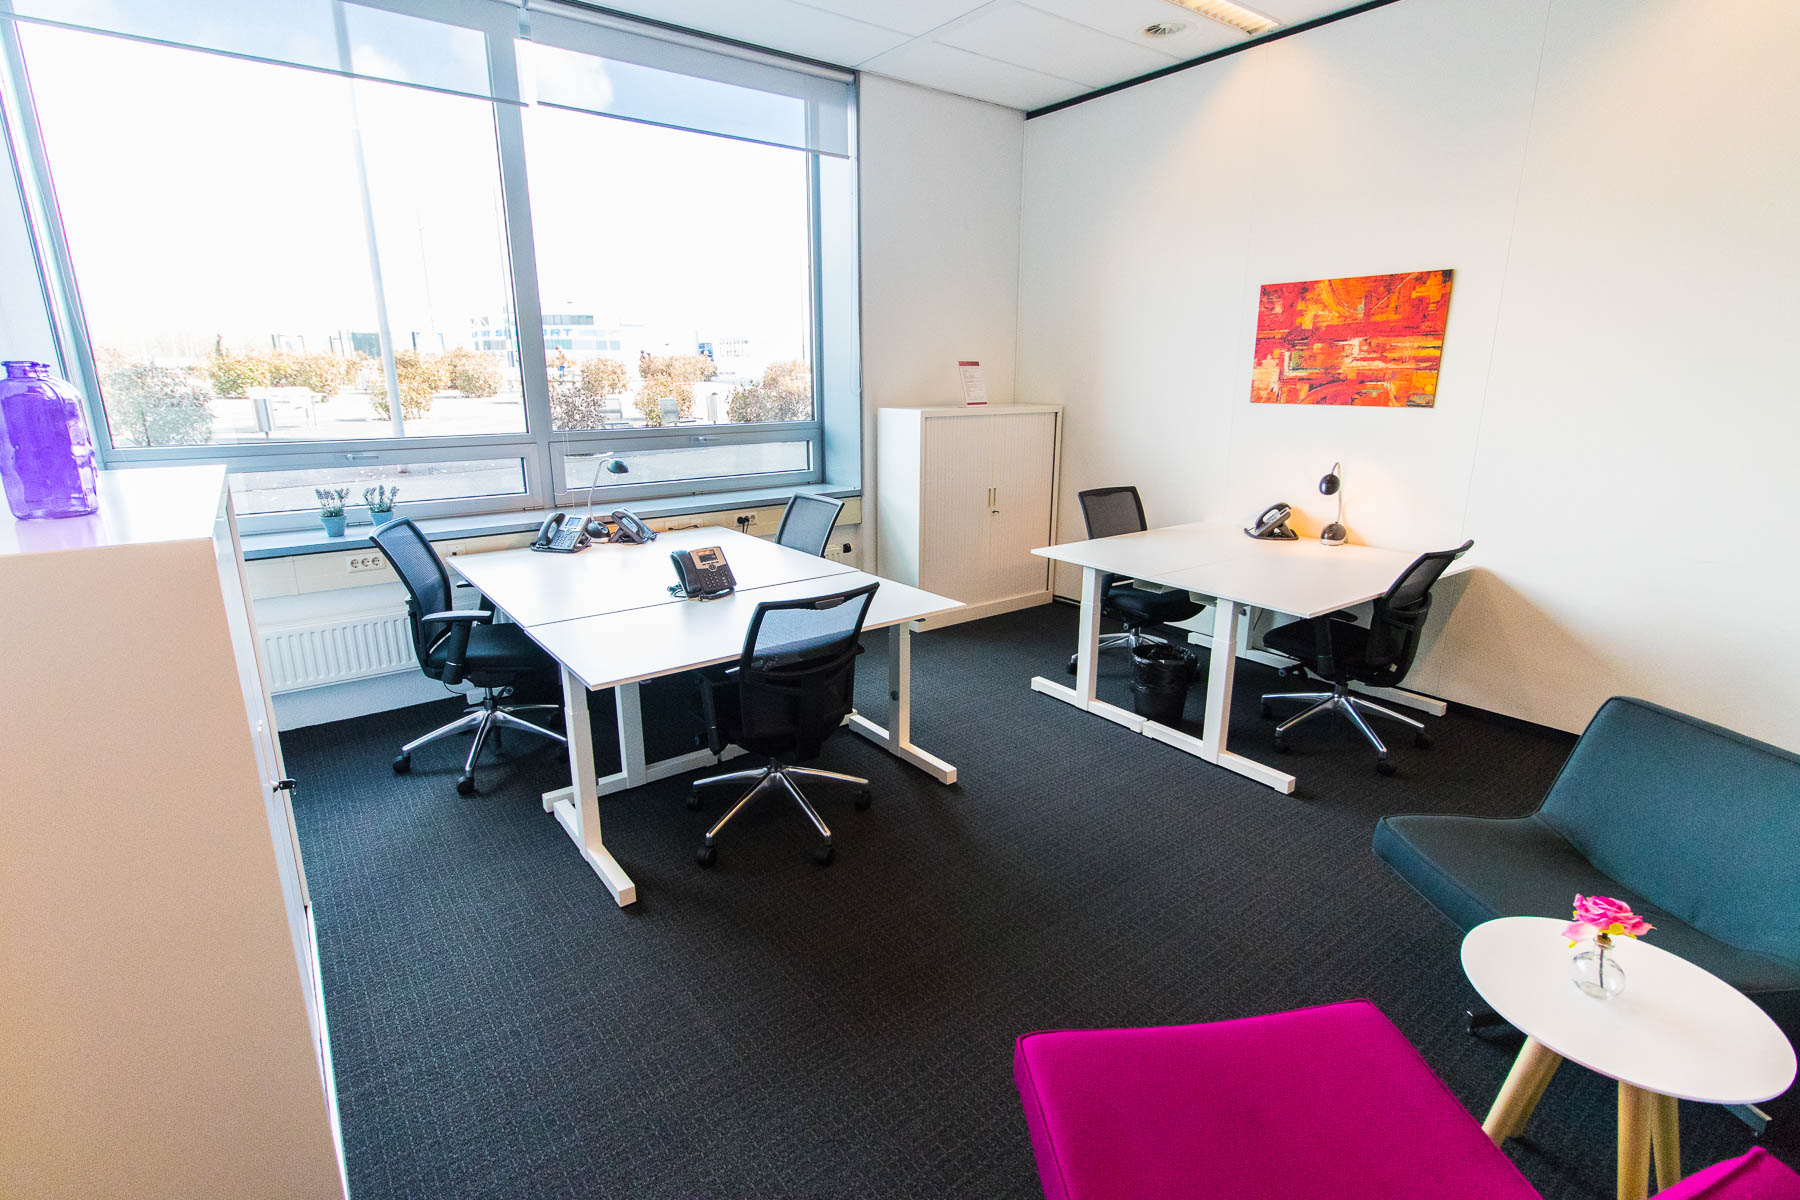 Large office spaces with natural light